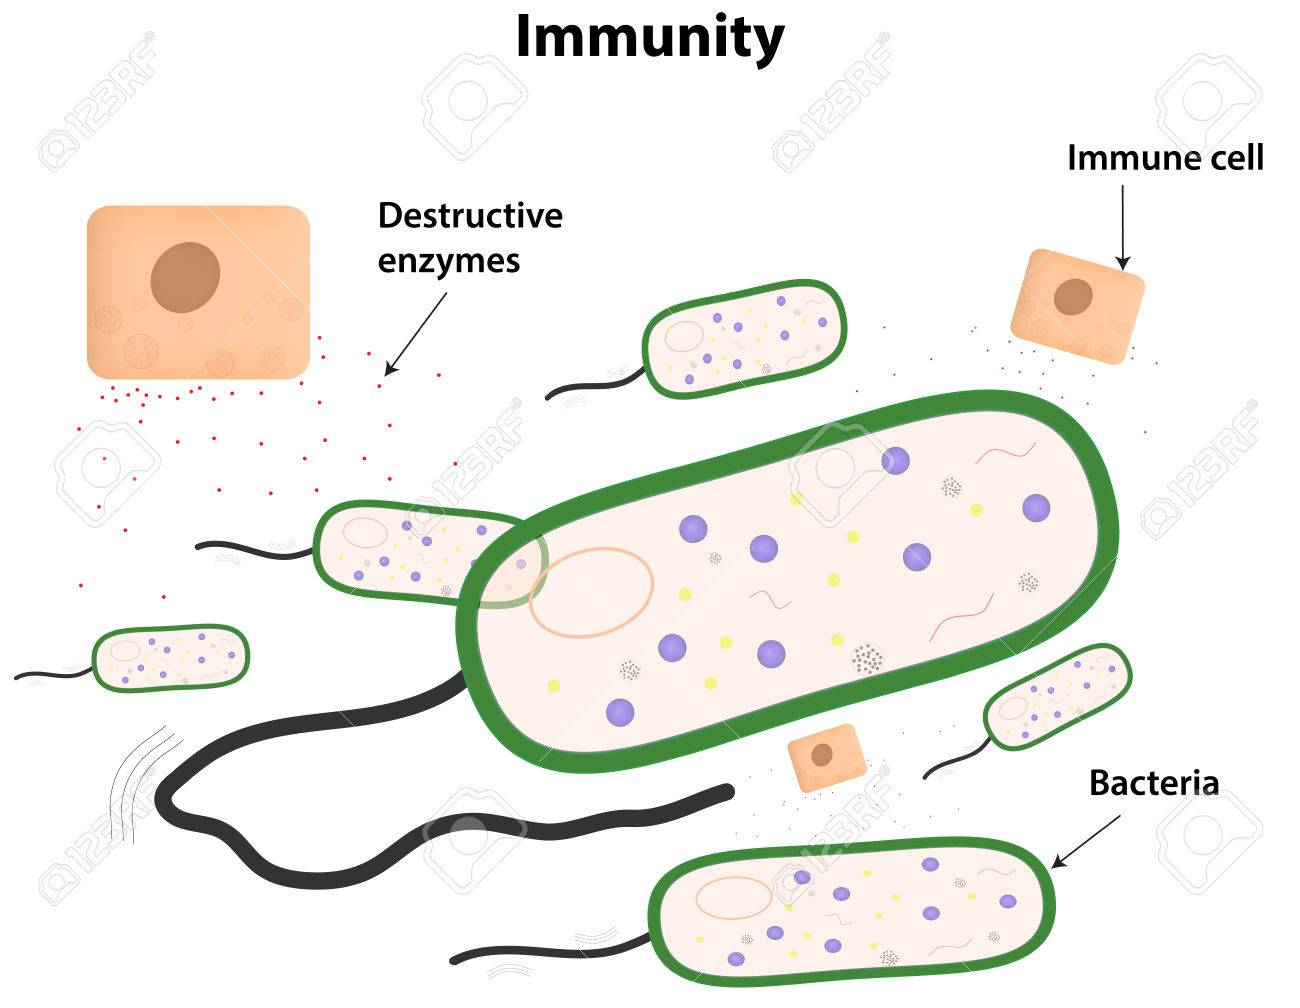 Immunity Labeled Diagram Royalty Free Cliparts, Vectors, And Stock ...